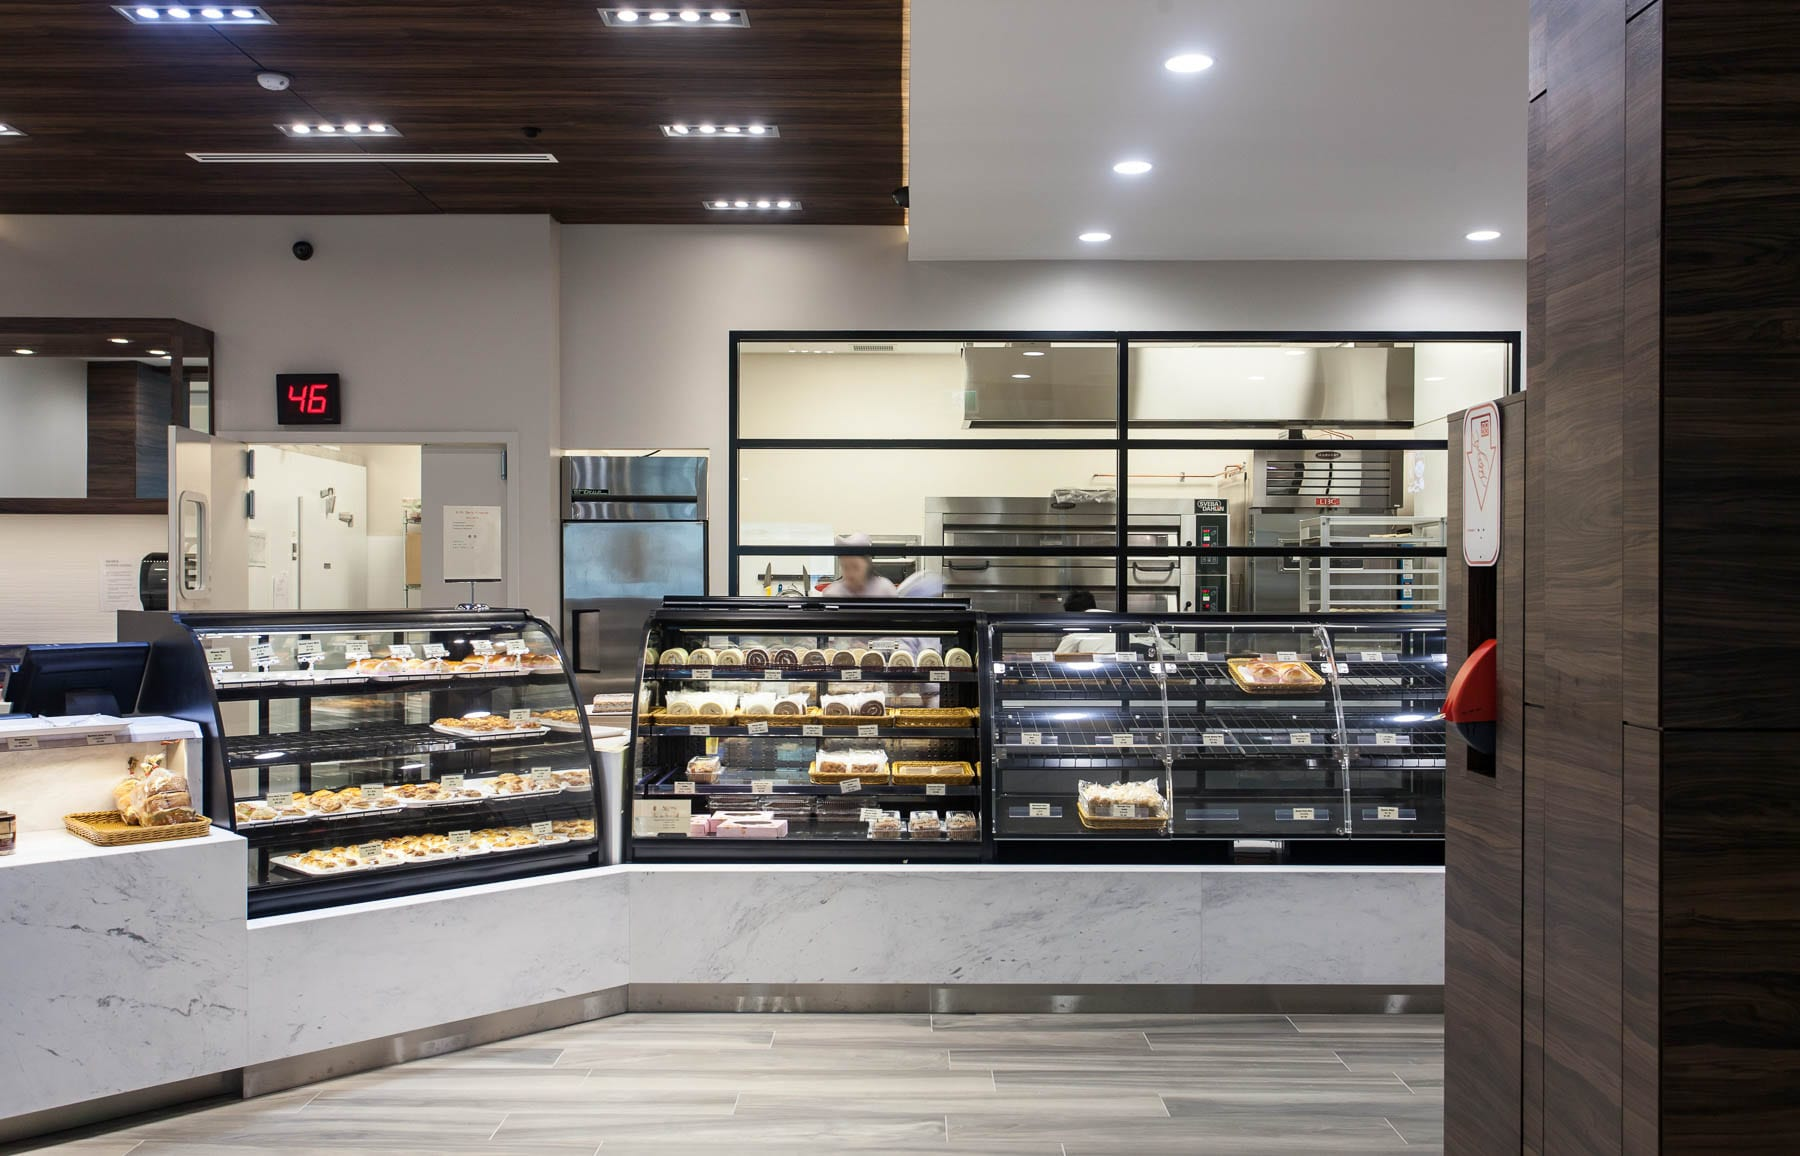 Saint Germain Bakery - new millwork for the point of sale, display units and storage.